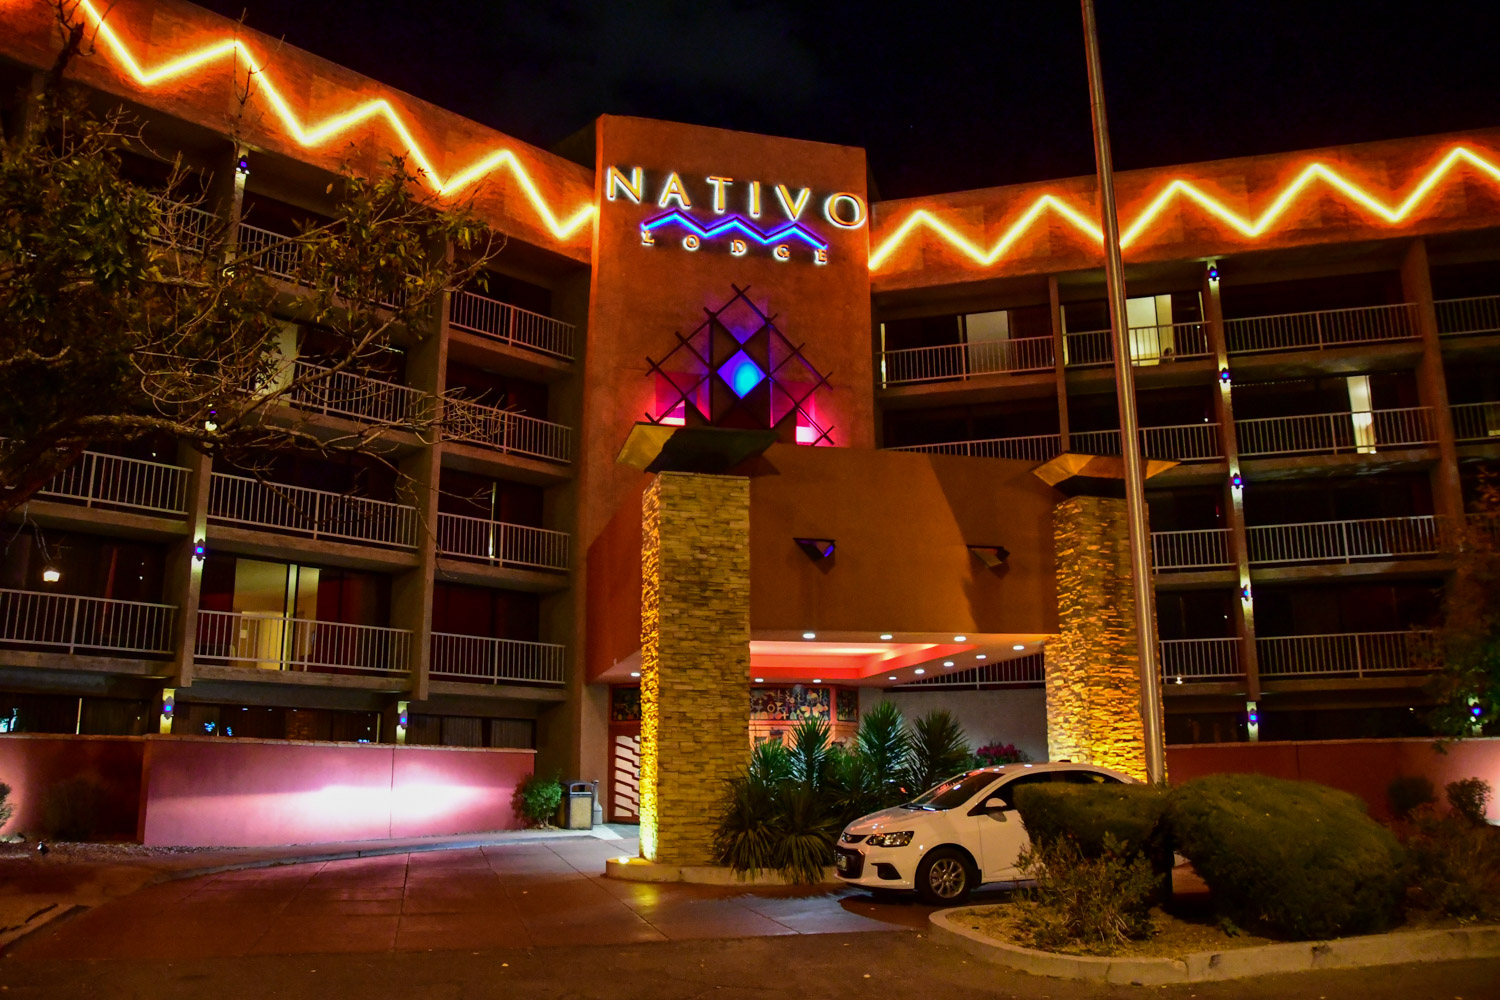 We stayed at the  Nativo Lodge  just minutes away from Balloon Fiesta Park, in anticipation of our very early start in the morning.